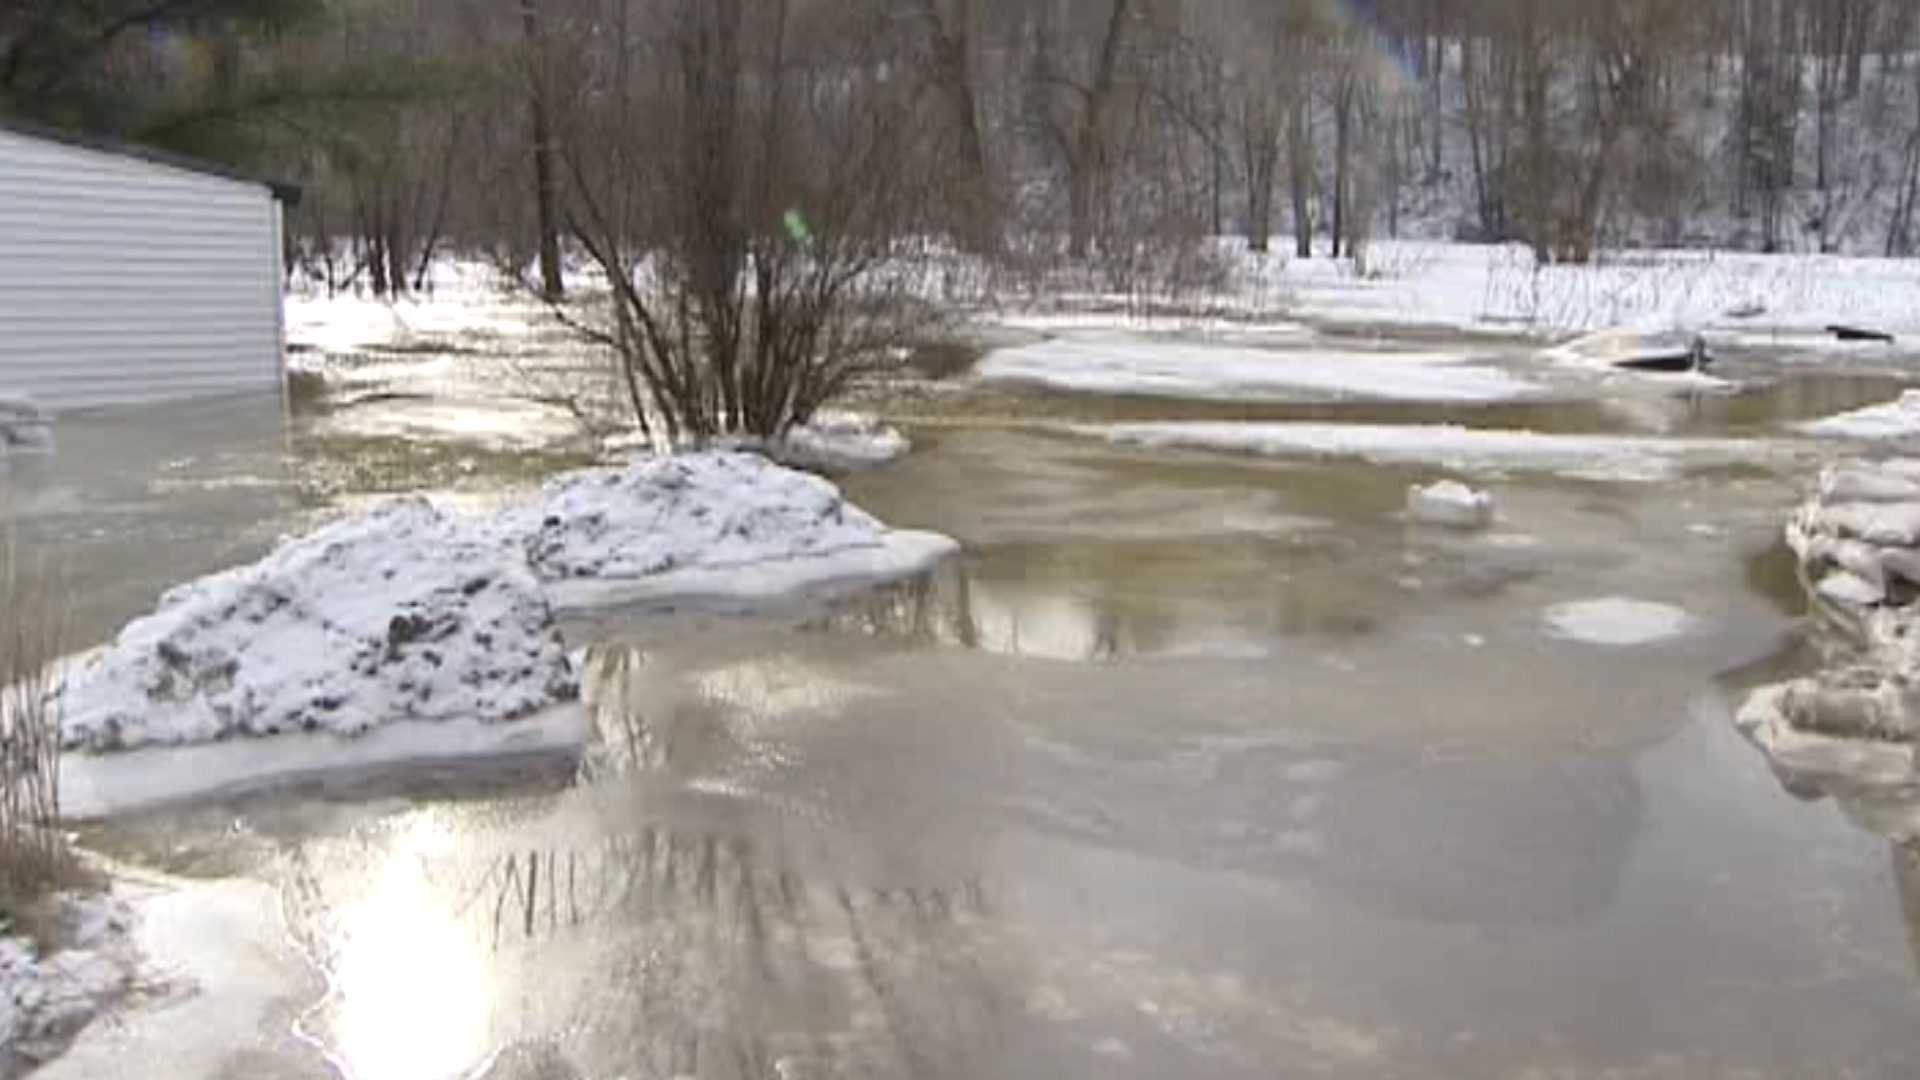 012713 Ice jam continues to back up Salmon River - img